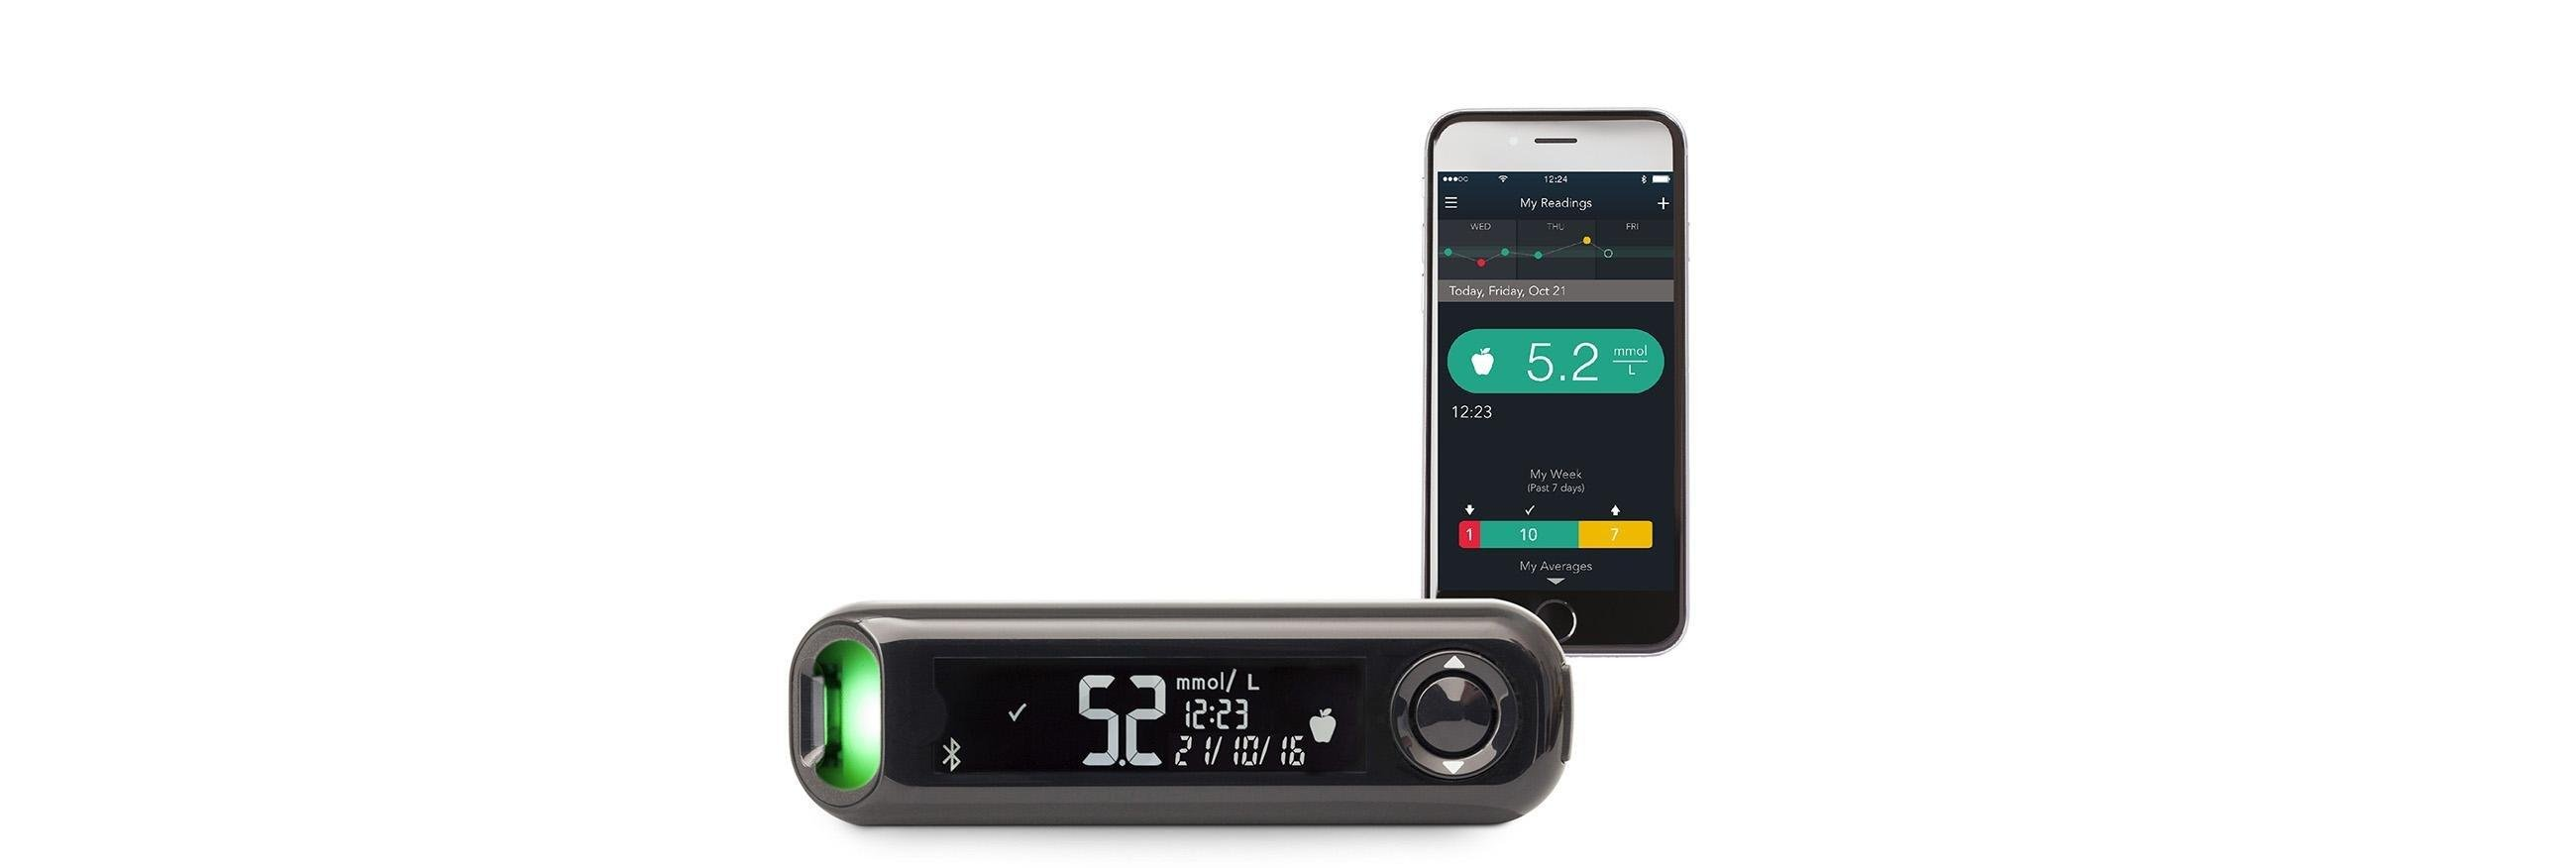 Ascensia Diabetes Care Launches Smarter Version Of Contour®diabetes App With New Features To Support Self-management